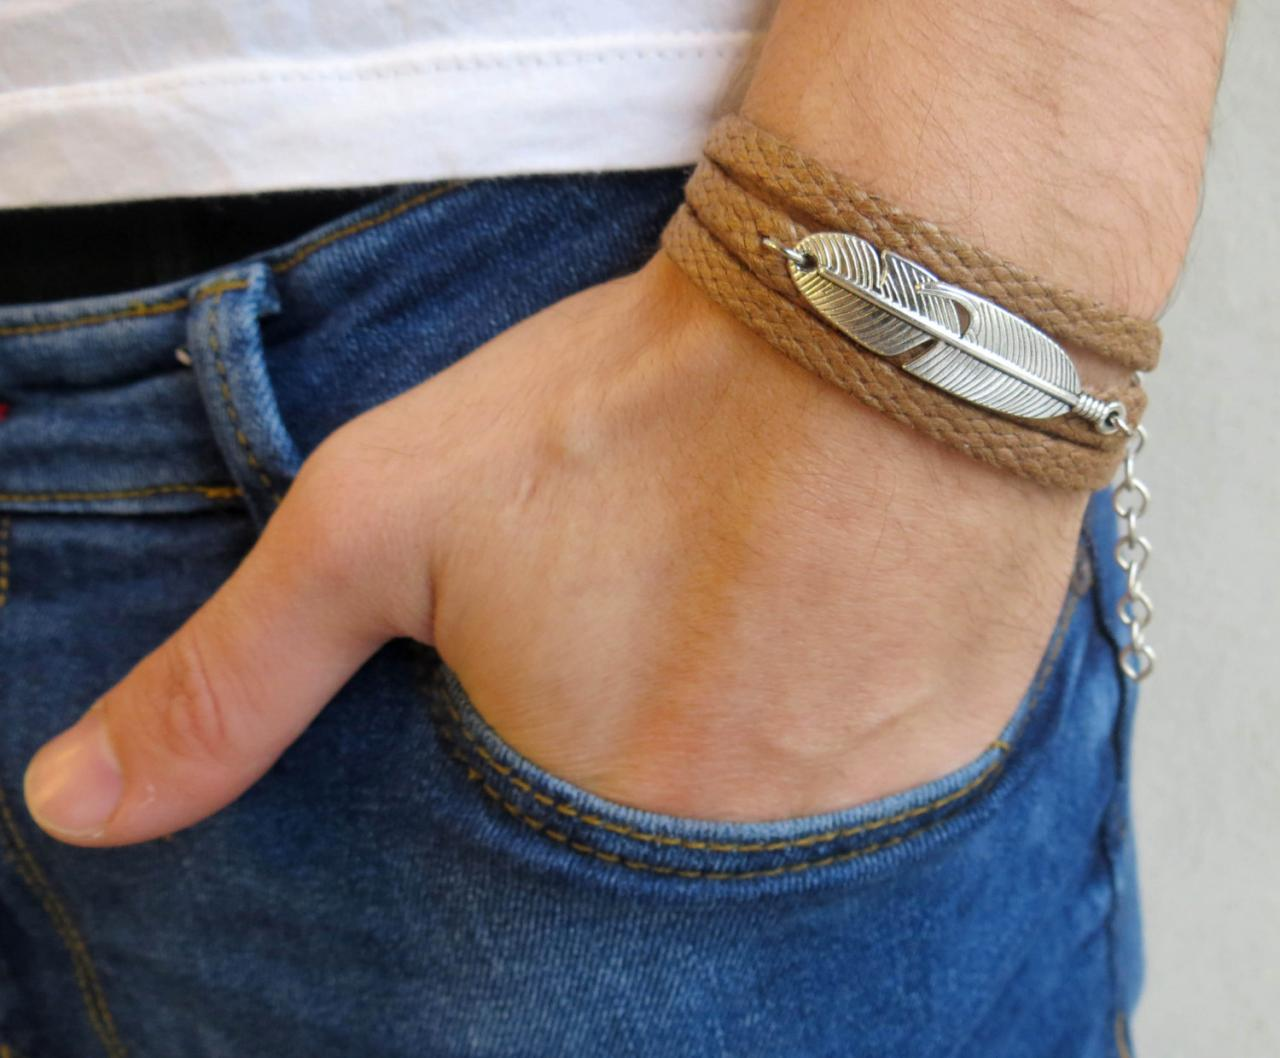 Men's Bracelet - Men's Feather Bracelet - Men's Vegan Bracelet - Men's Jewelry - Men's Gift - Boyfrienf Gift - Husband Gift - Gift for him - Gift For Dad - Present For Men - Male Bracelet - Male Jewelry